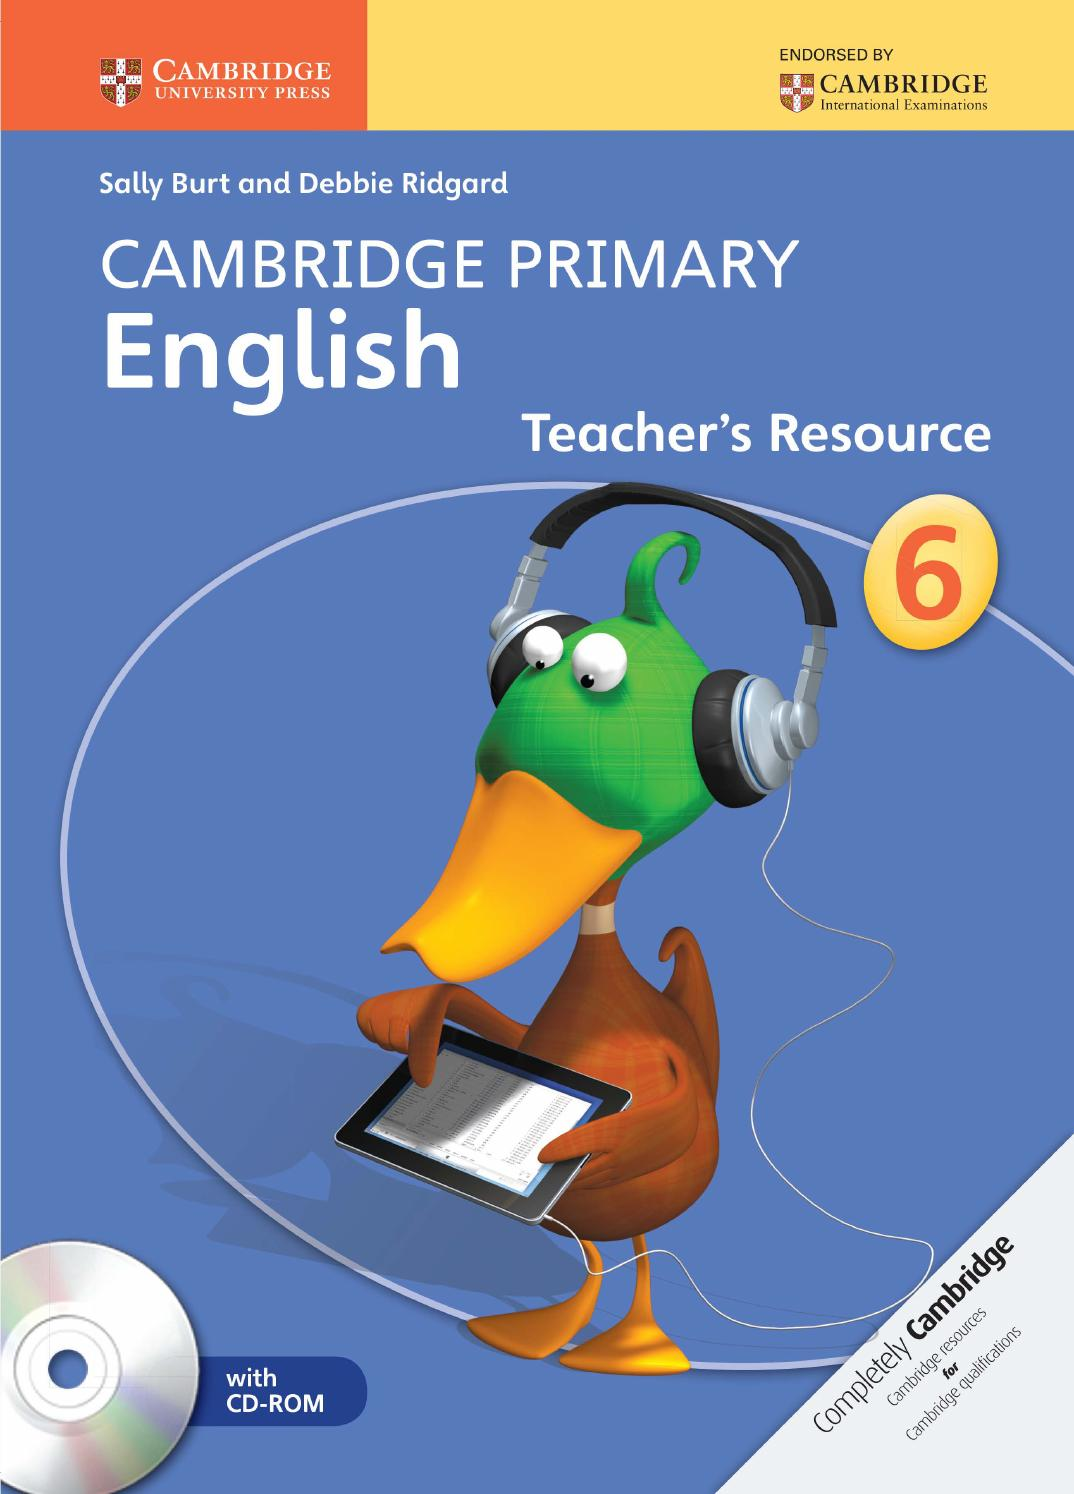 Preview Cambridge Primary English Teacher's Resource Book 6 by Cambridge  University Press Education - issuu